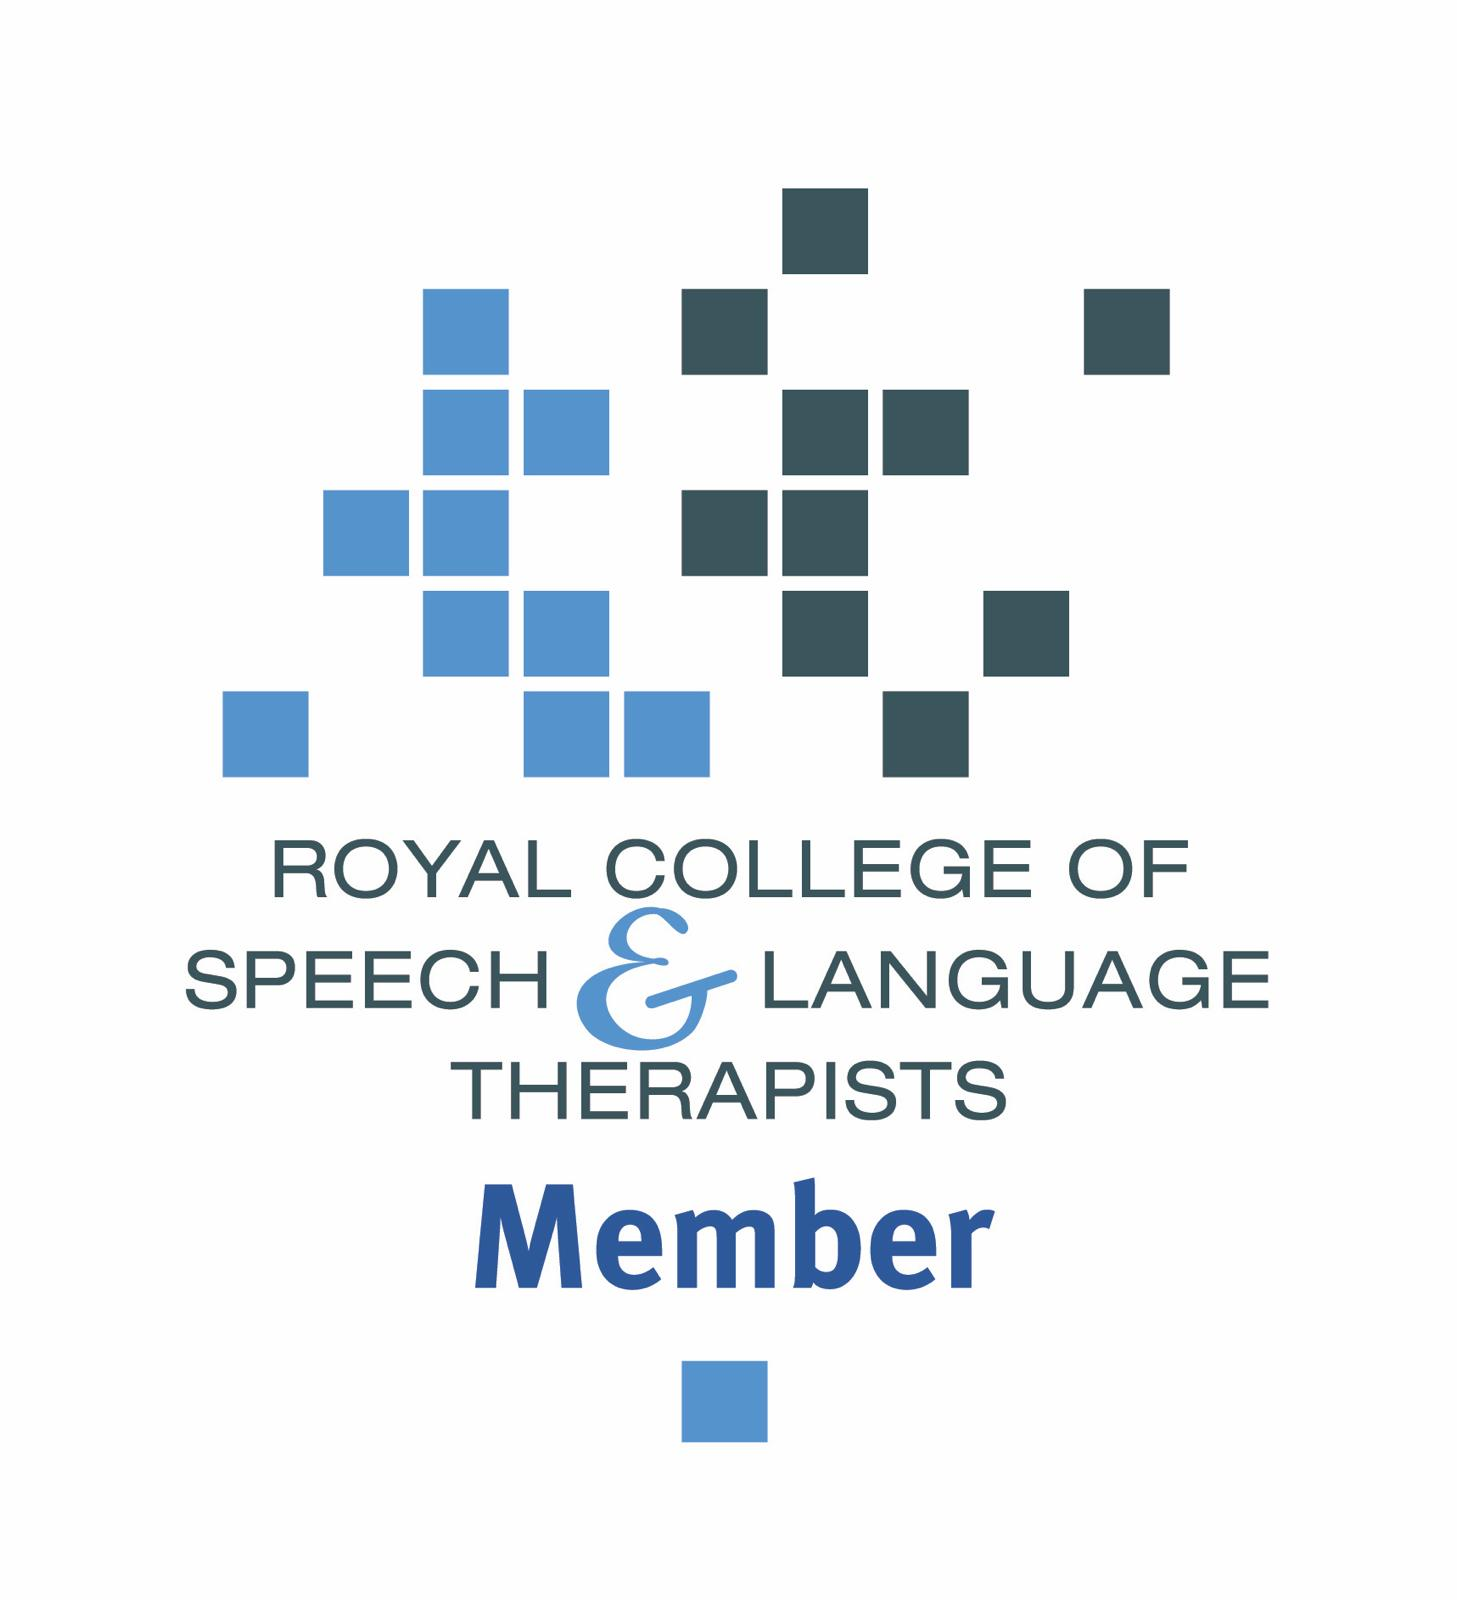 Royal College of Speech and Language therapist